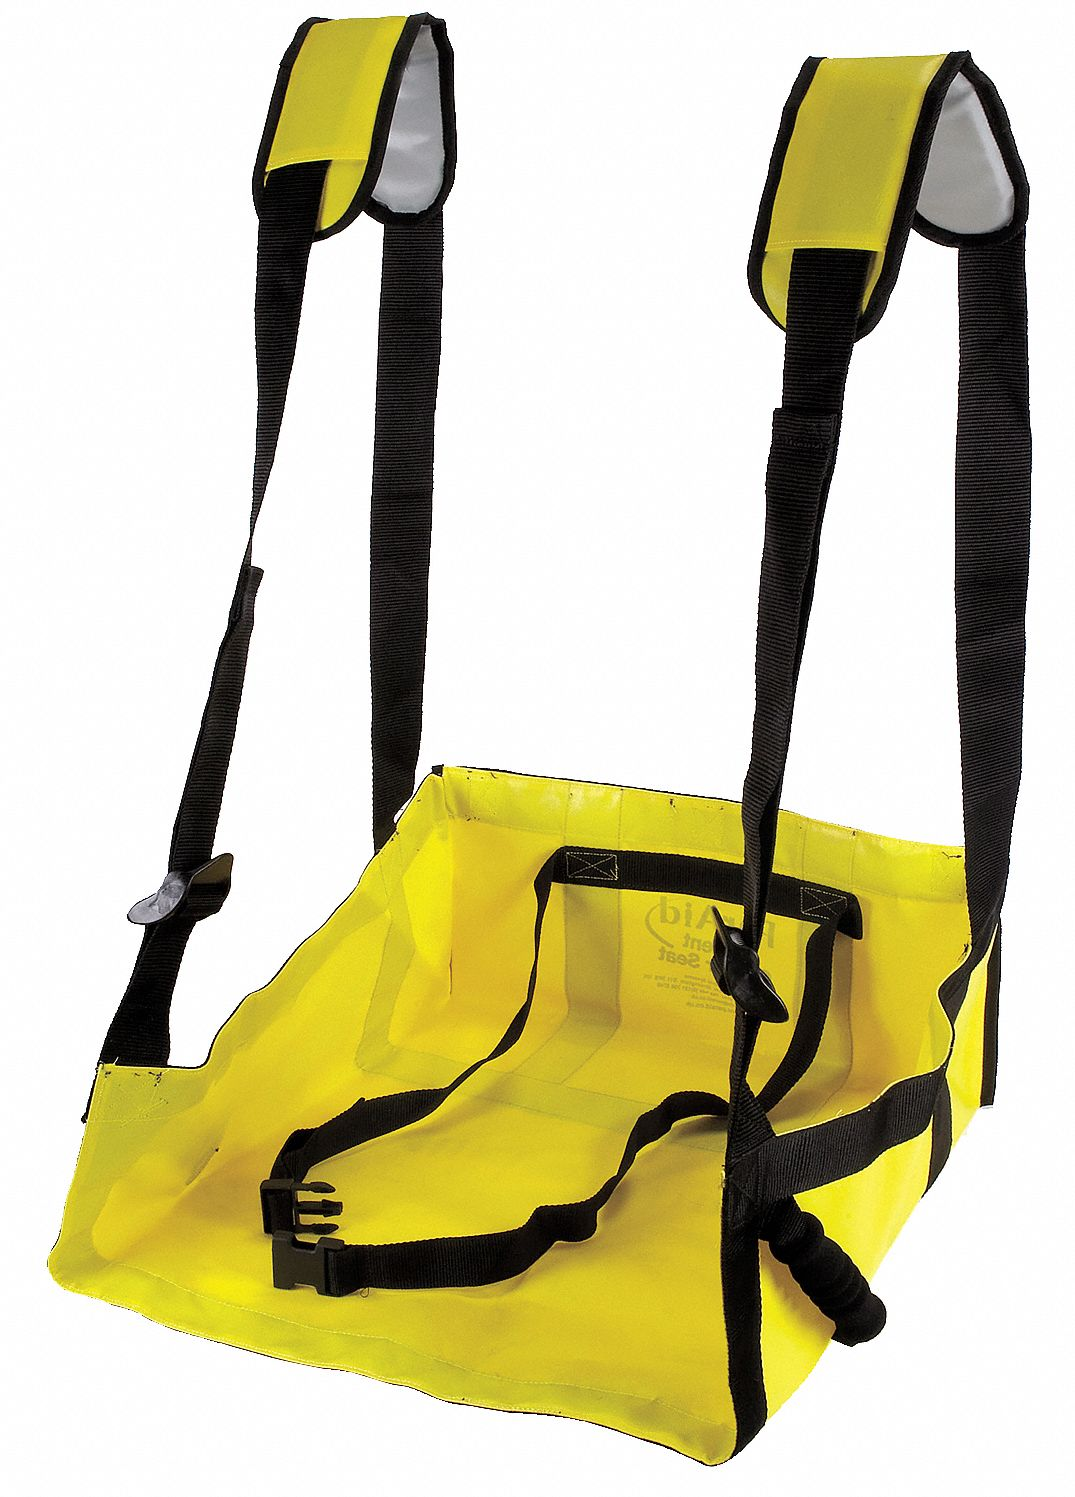 Rescue Seat,  350 lb Weight Capacity,  20 1/2 in Width,  1 in Height,  Vinyl